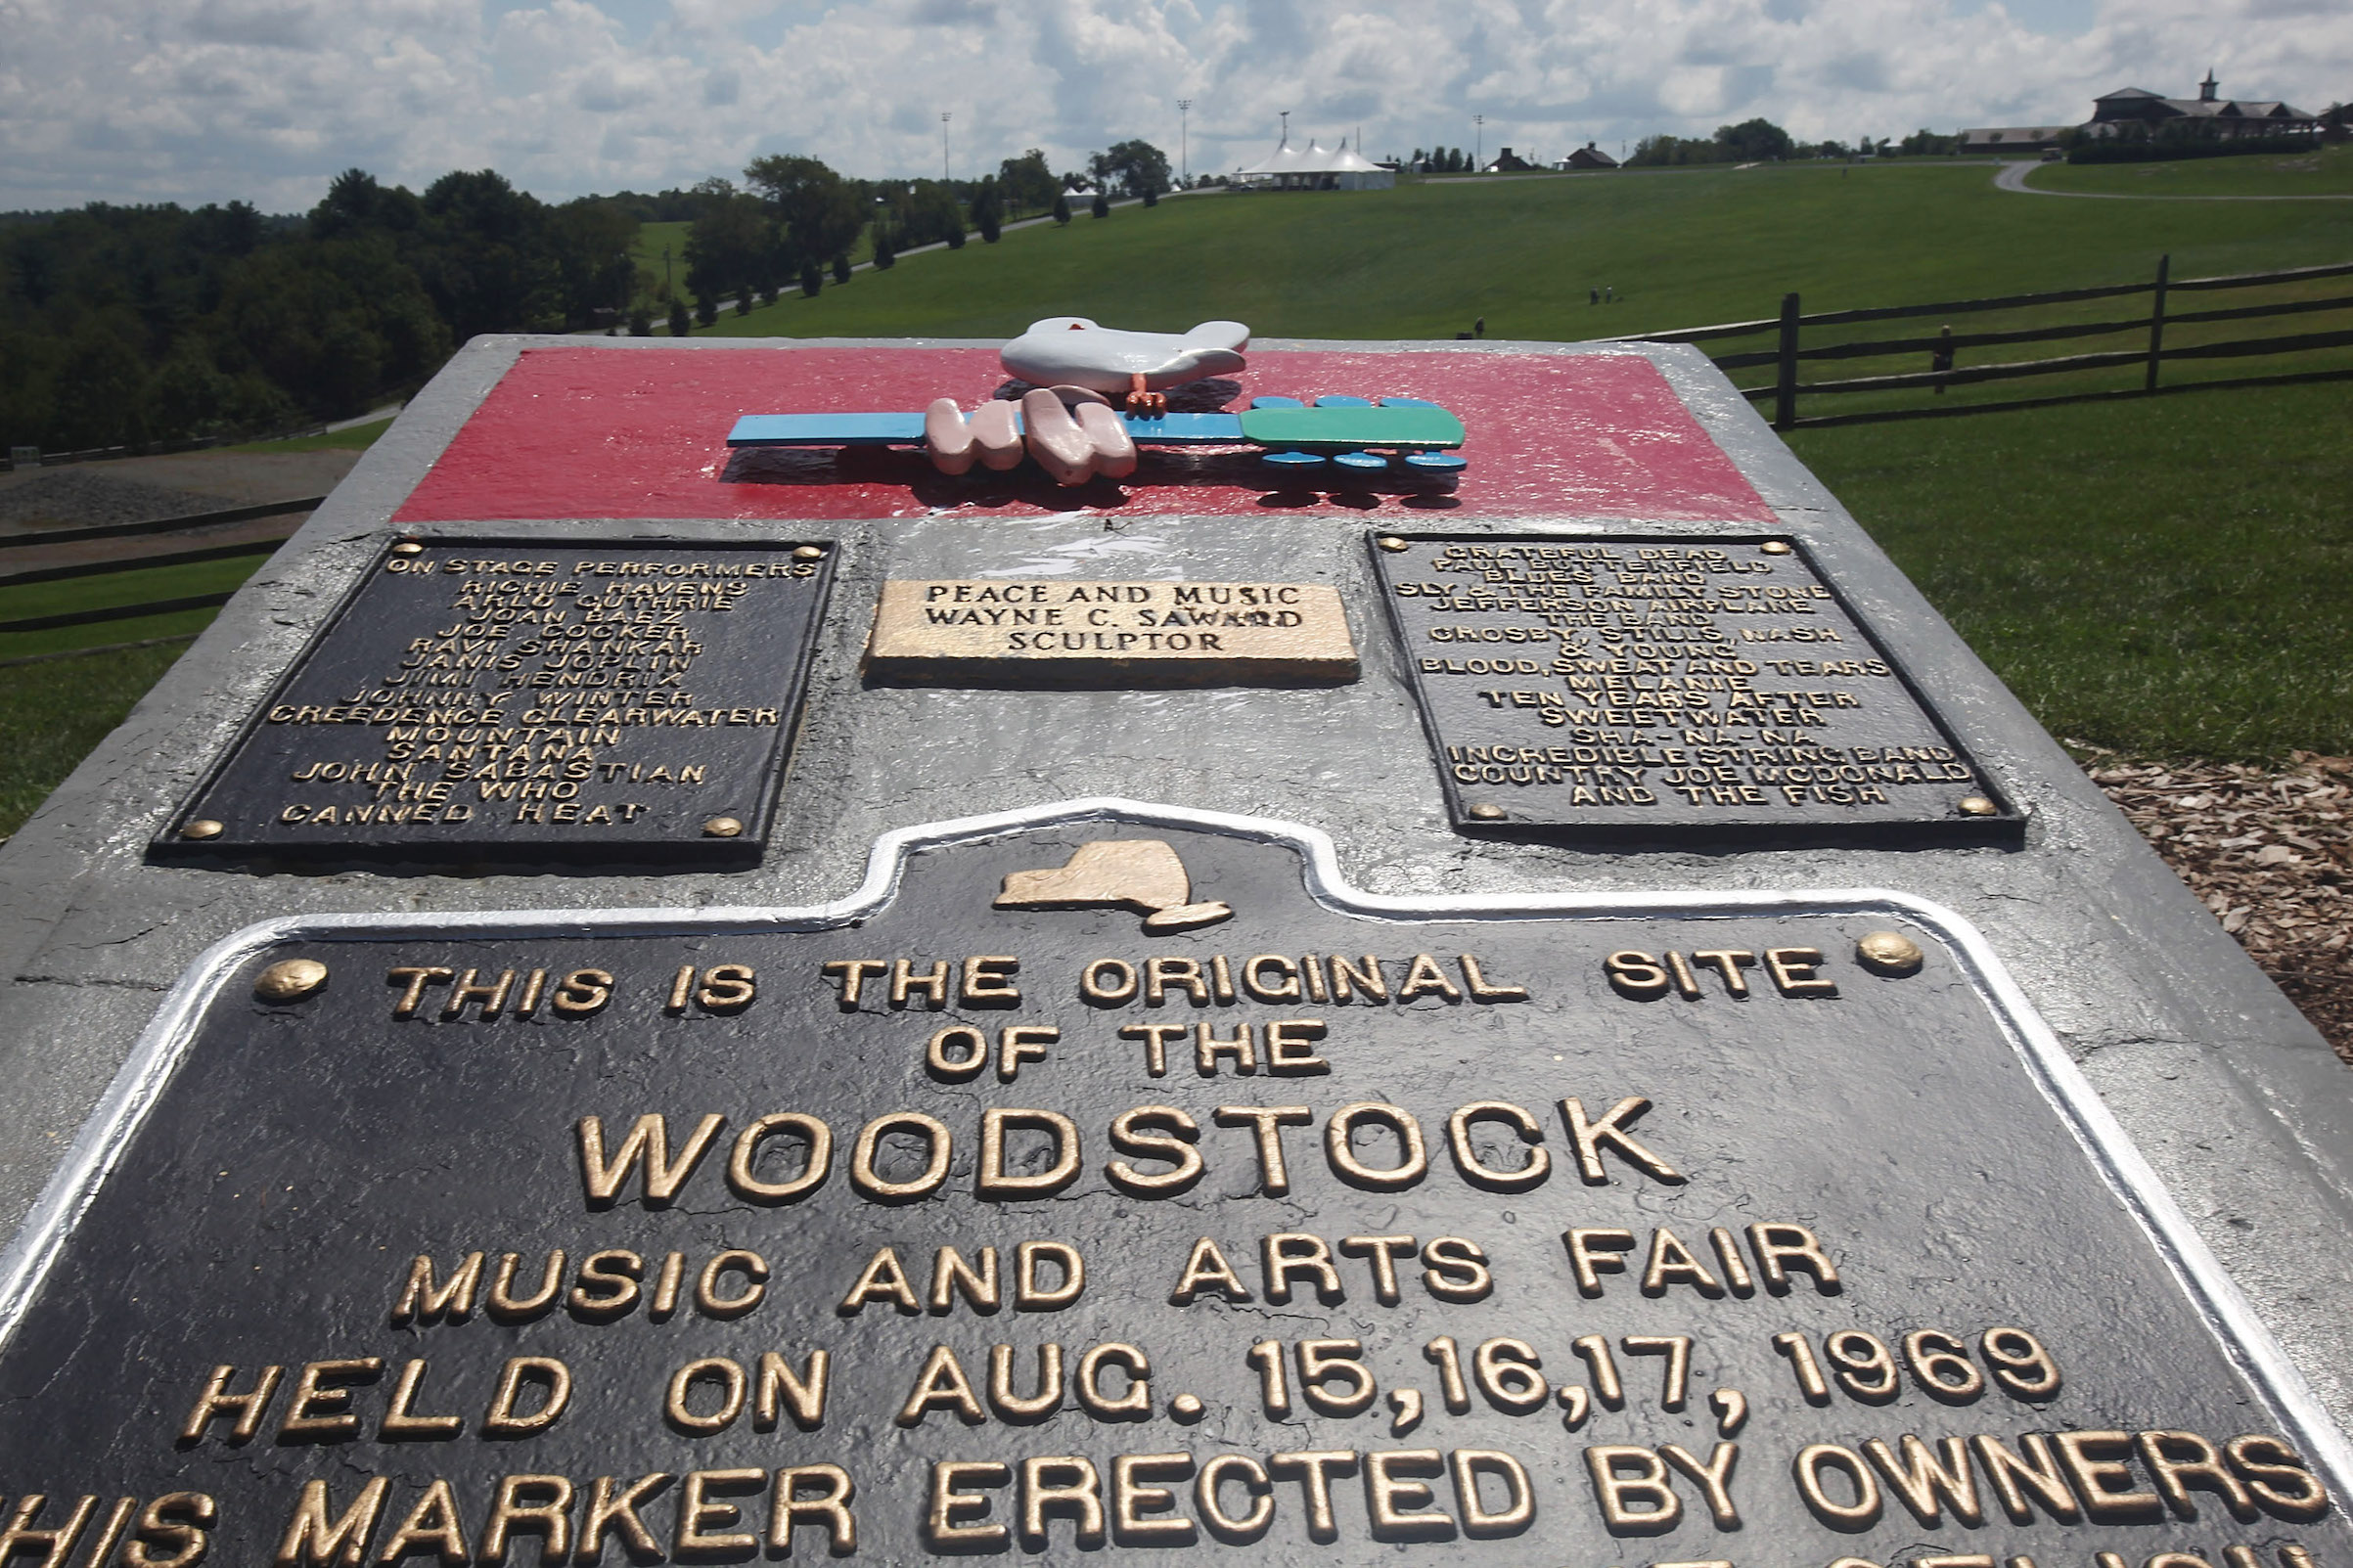 A plaque marks the original site of the Woodstock music festival, seen Aug. 14, 2009 in Bethel, N.Y.